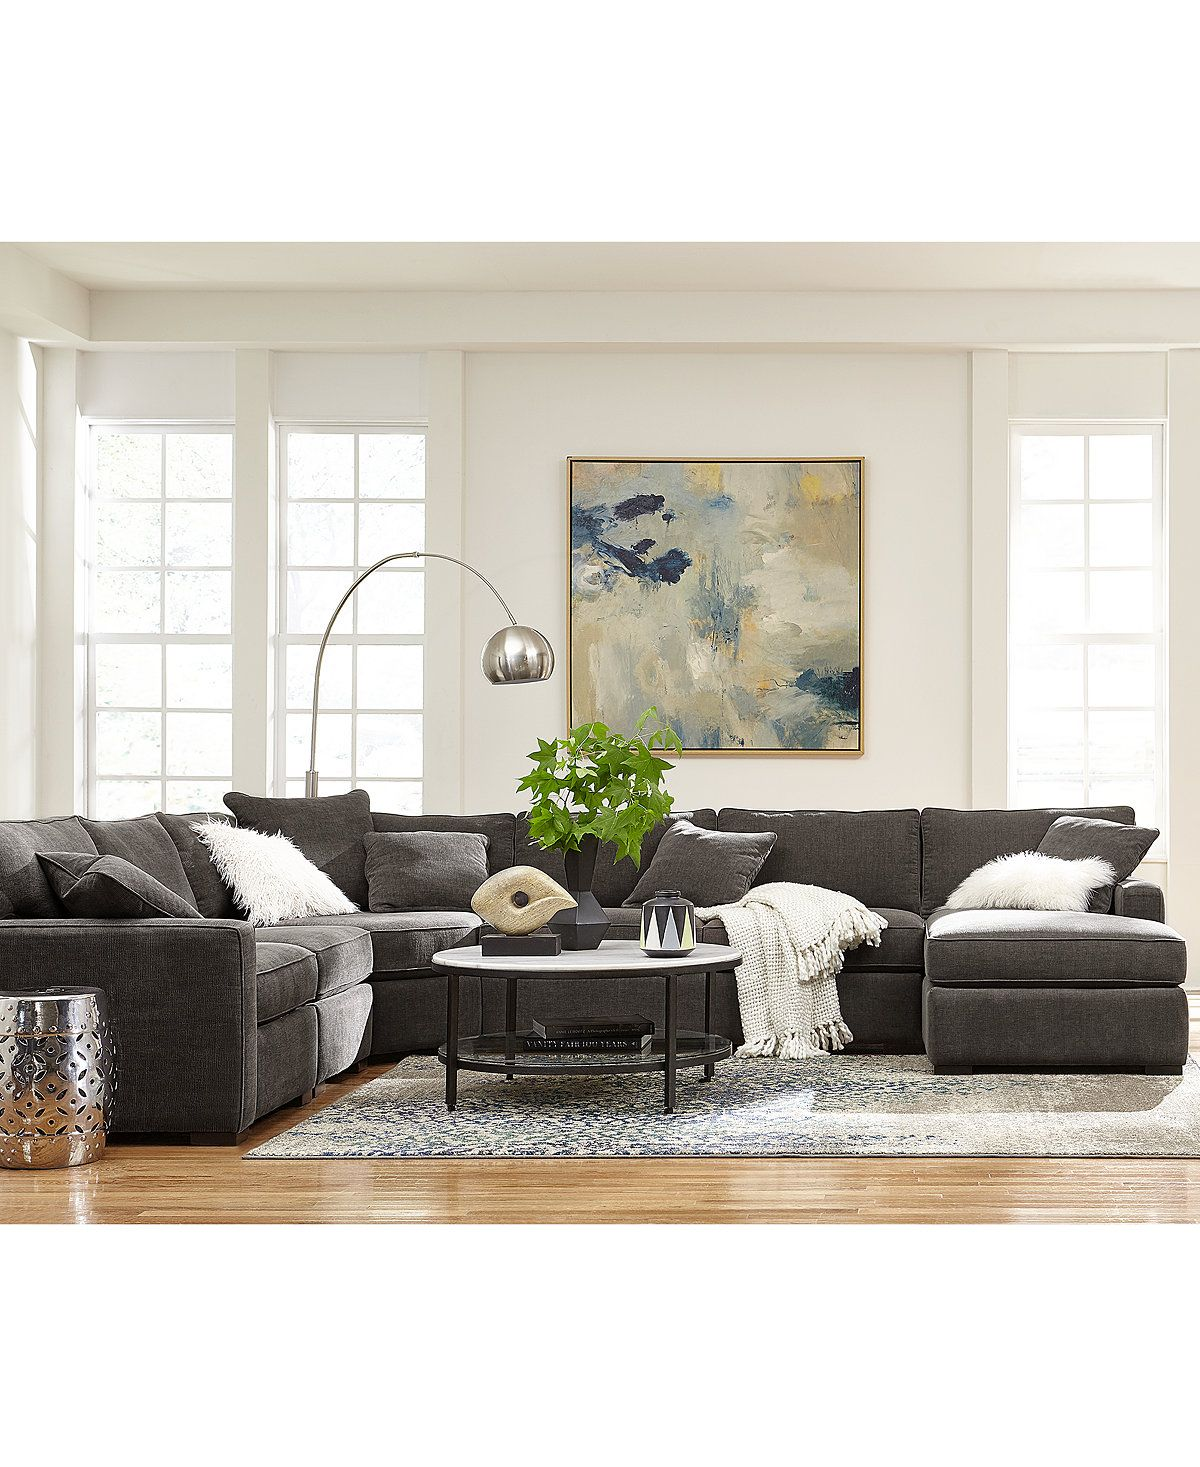 macy s sectional sofa make cover easy radley 5 piece fabric chaise sofas furniture